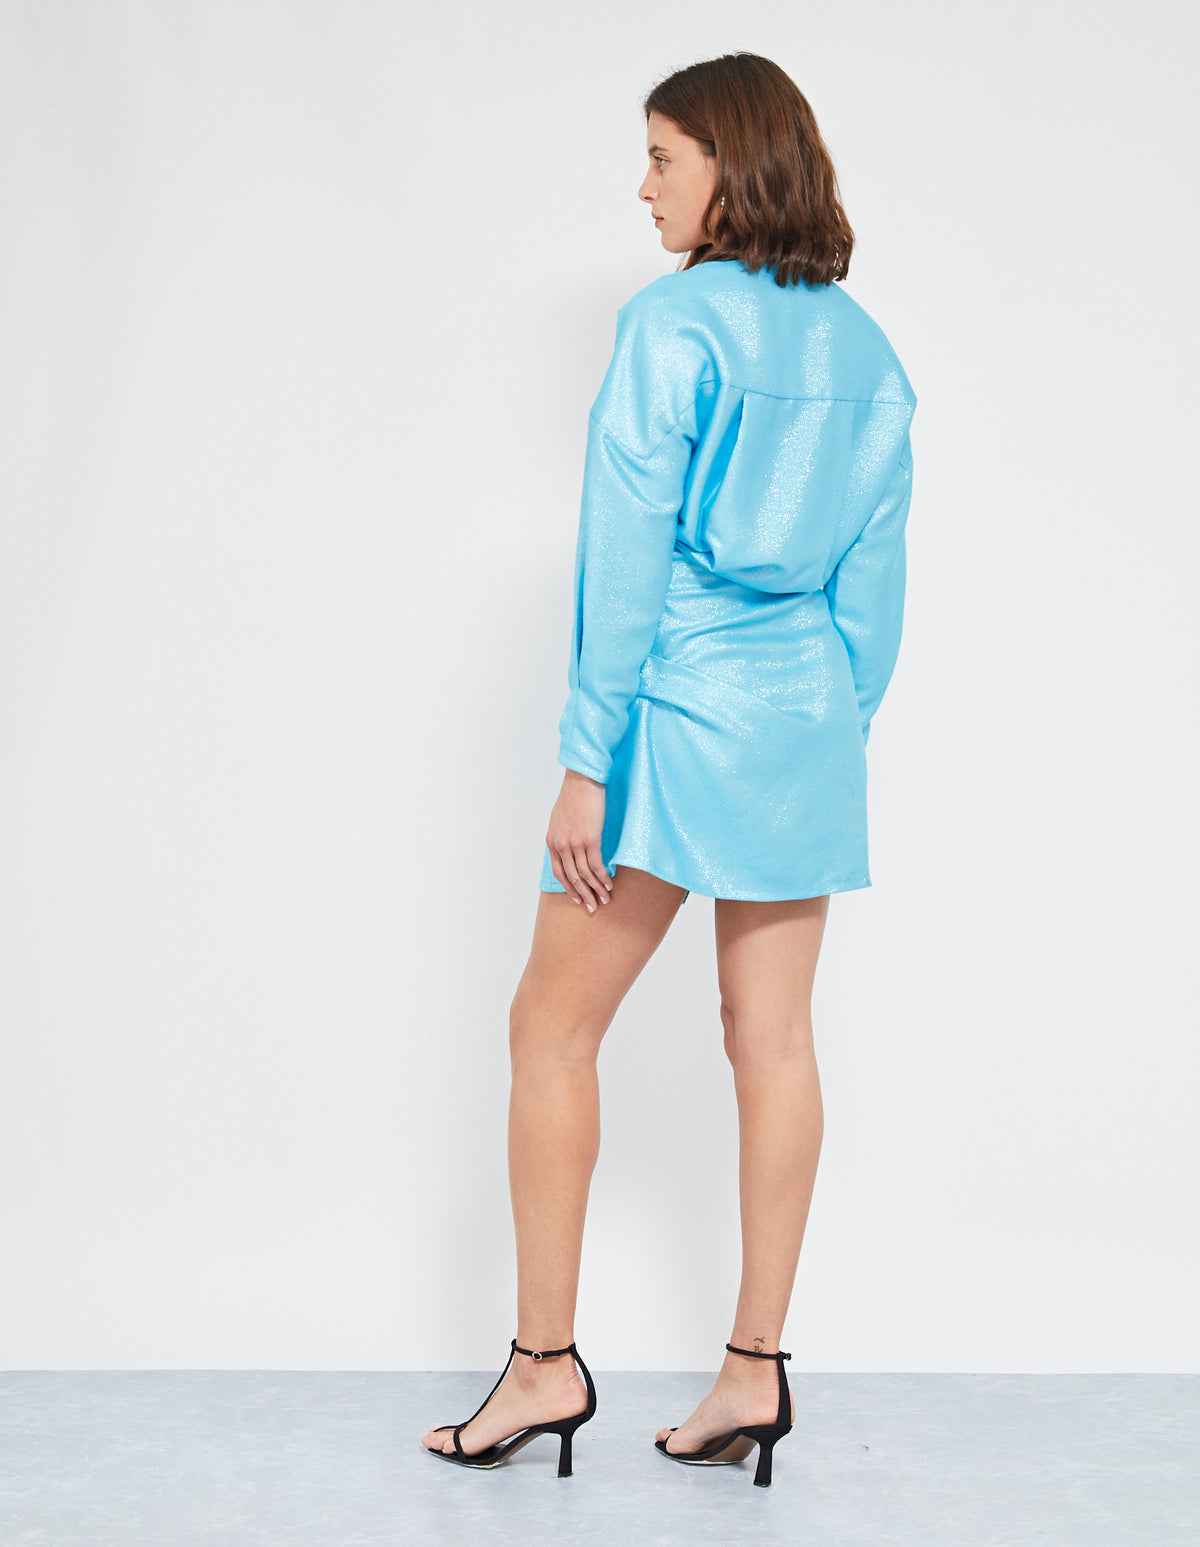 ATOMIC TWIST DRESS | ICE BLUE